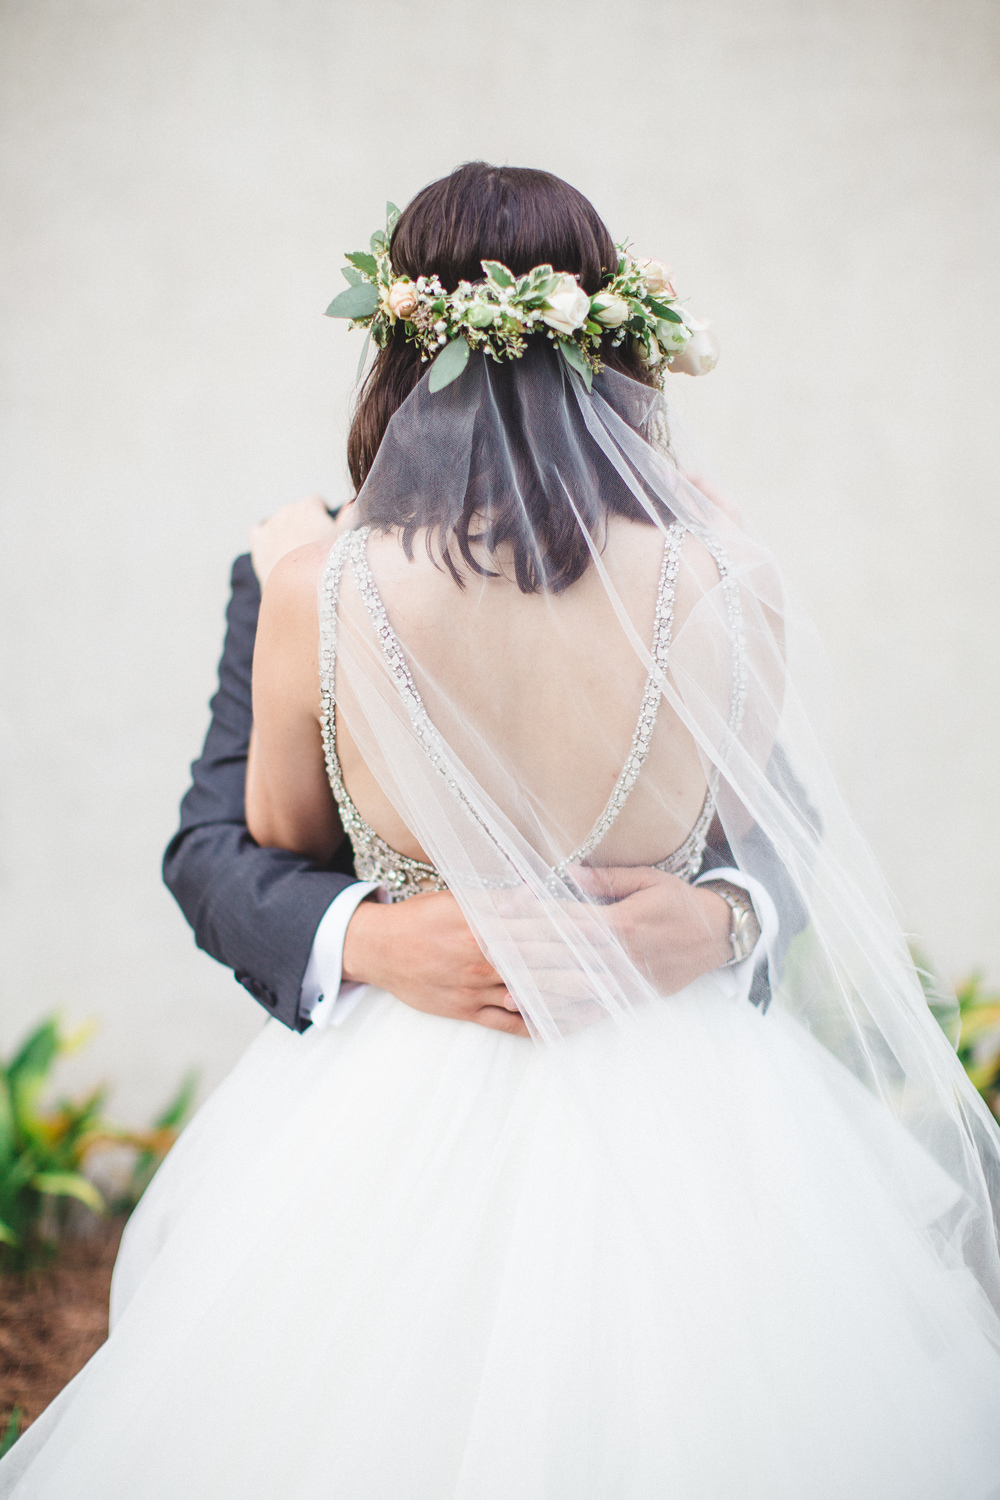 daniela-and-pedro-wedding-izzy-hudgins-photography-a-to-zinnias-whitfield-square-charles-h-morris-center-wedding-ivoyy-and-beau-bridal-boutique-dorie-hayley-paige-savannah-wedding-planner-savannah-bridal-boutique-savannah-weddings-36.jpg